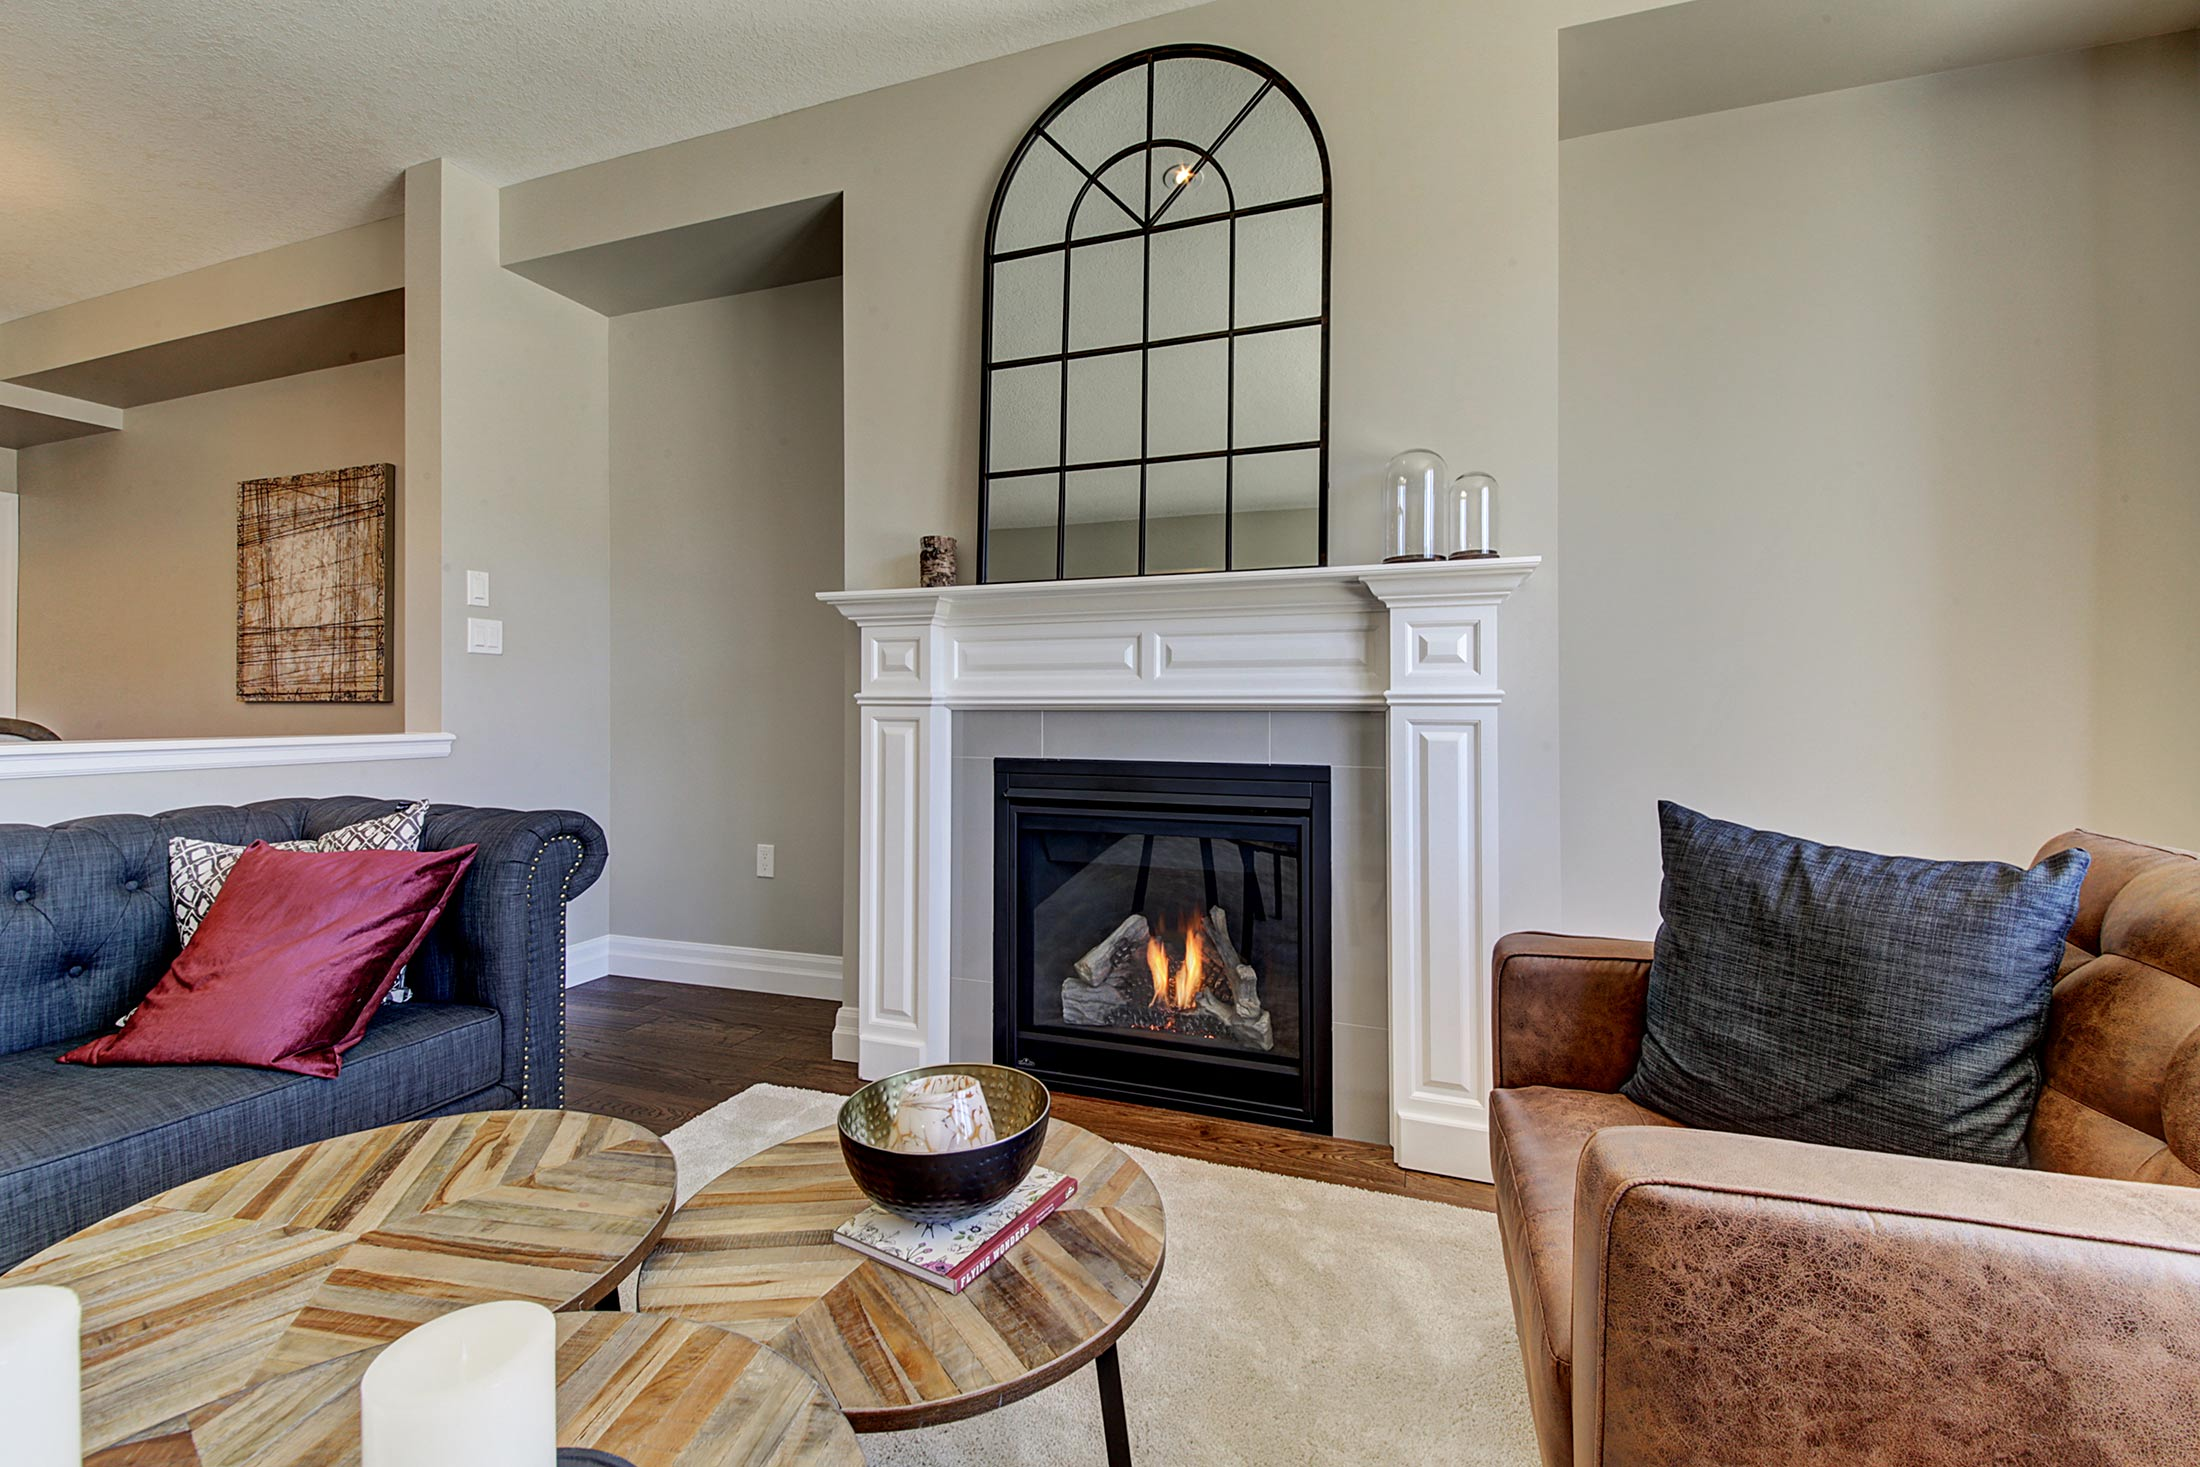 Fireplace   Add warmth, style and a wonderful place for the family to gather with our selection of gas fireplaces. Personalize your fireplace by selecting a mantle and/or tile to suite your décor.